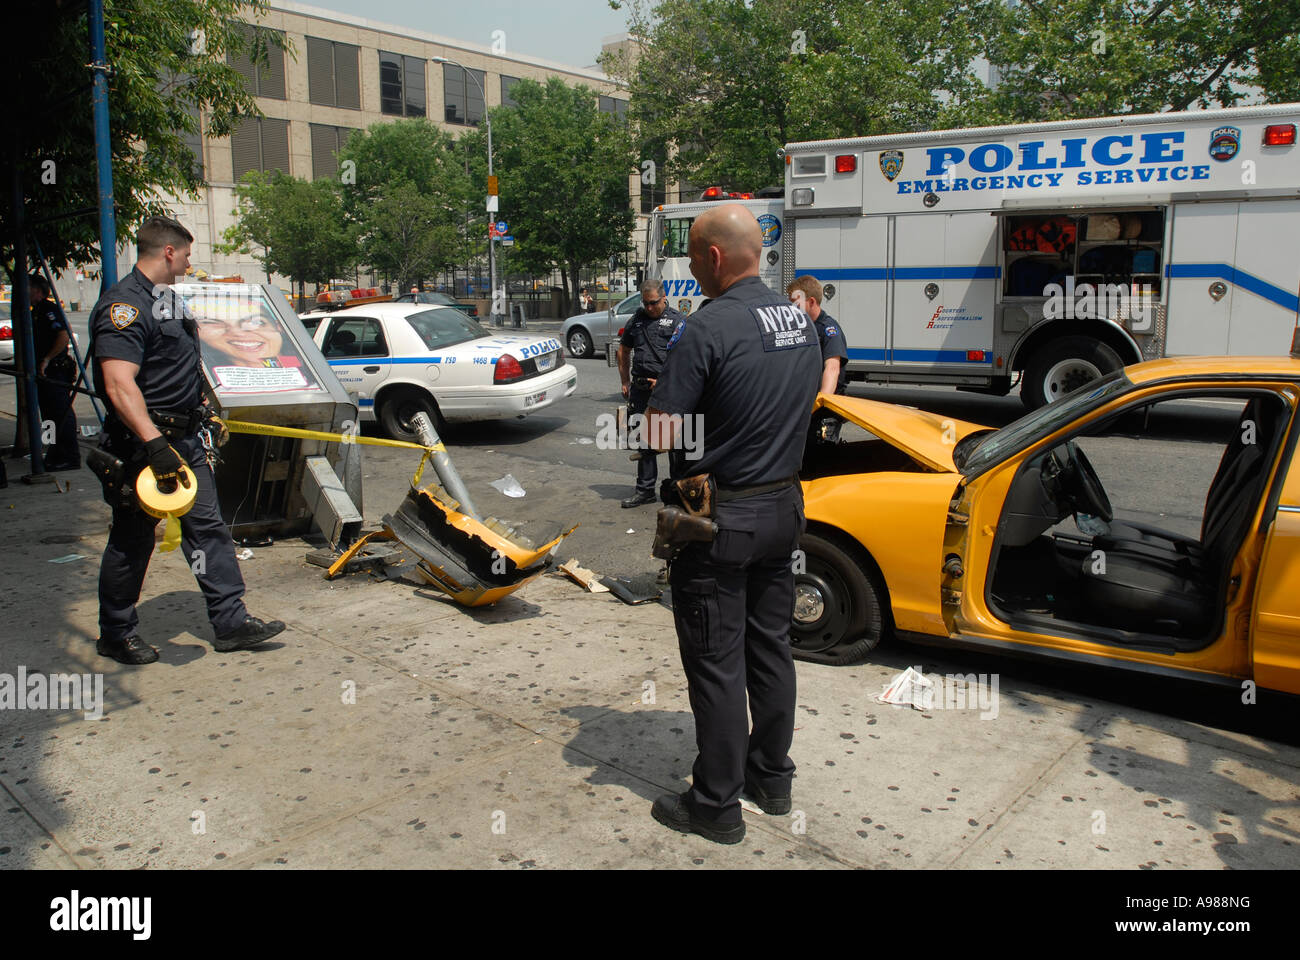 NYPD officers at the scene of a taxi accident Stock Photo